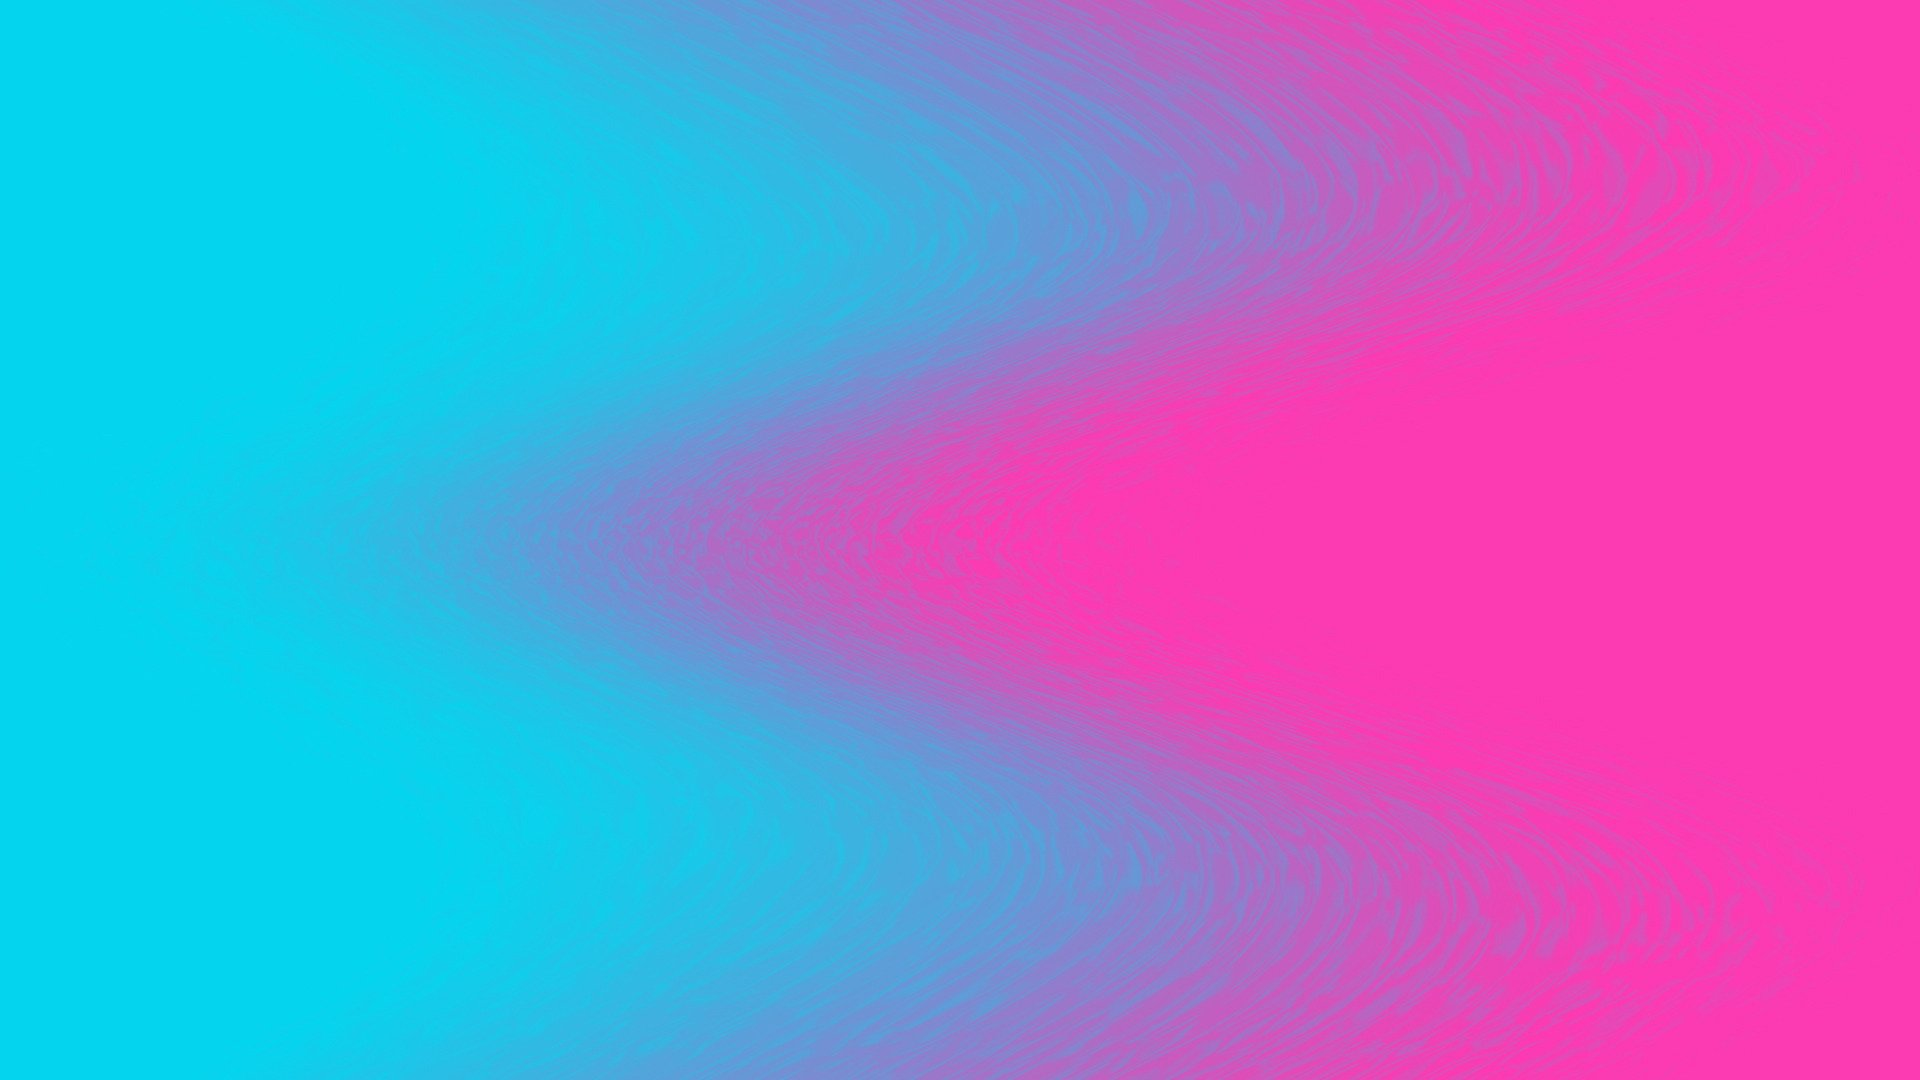 Wallpaper blue pink